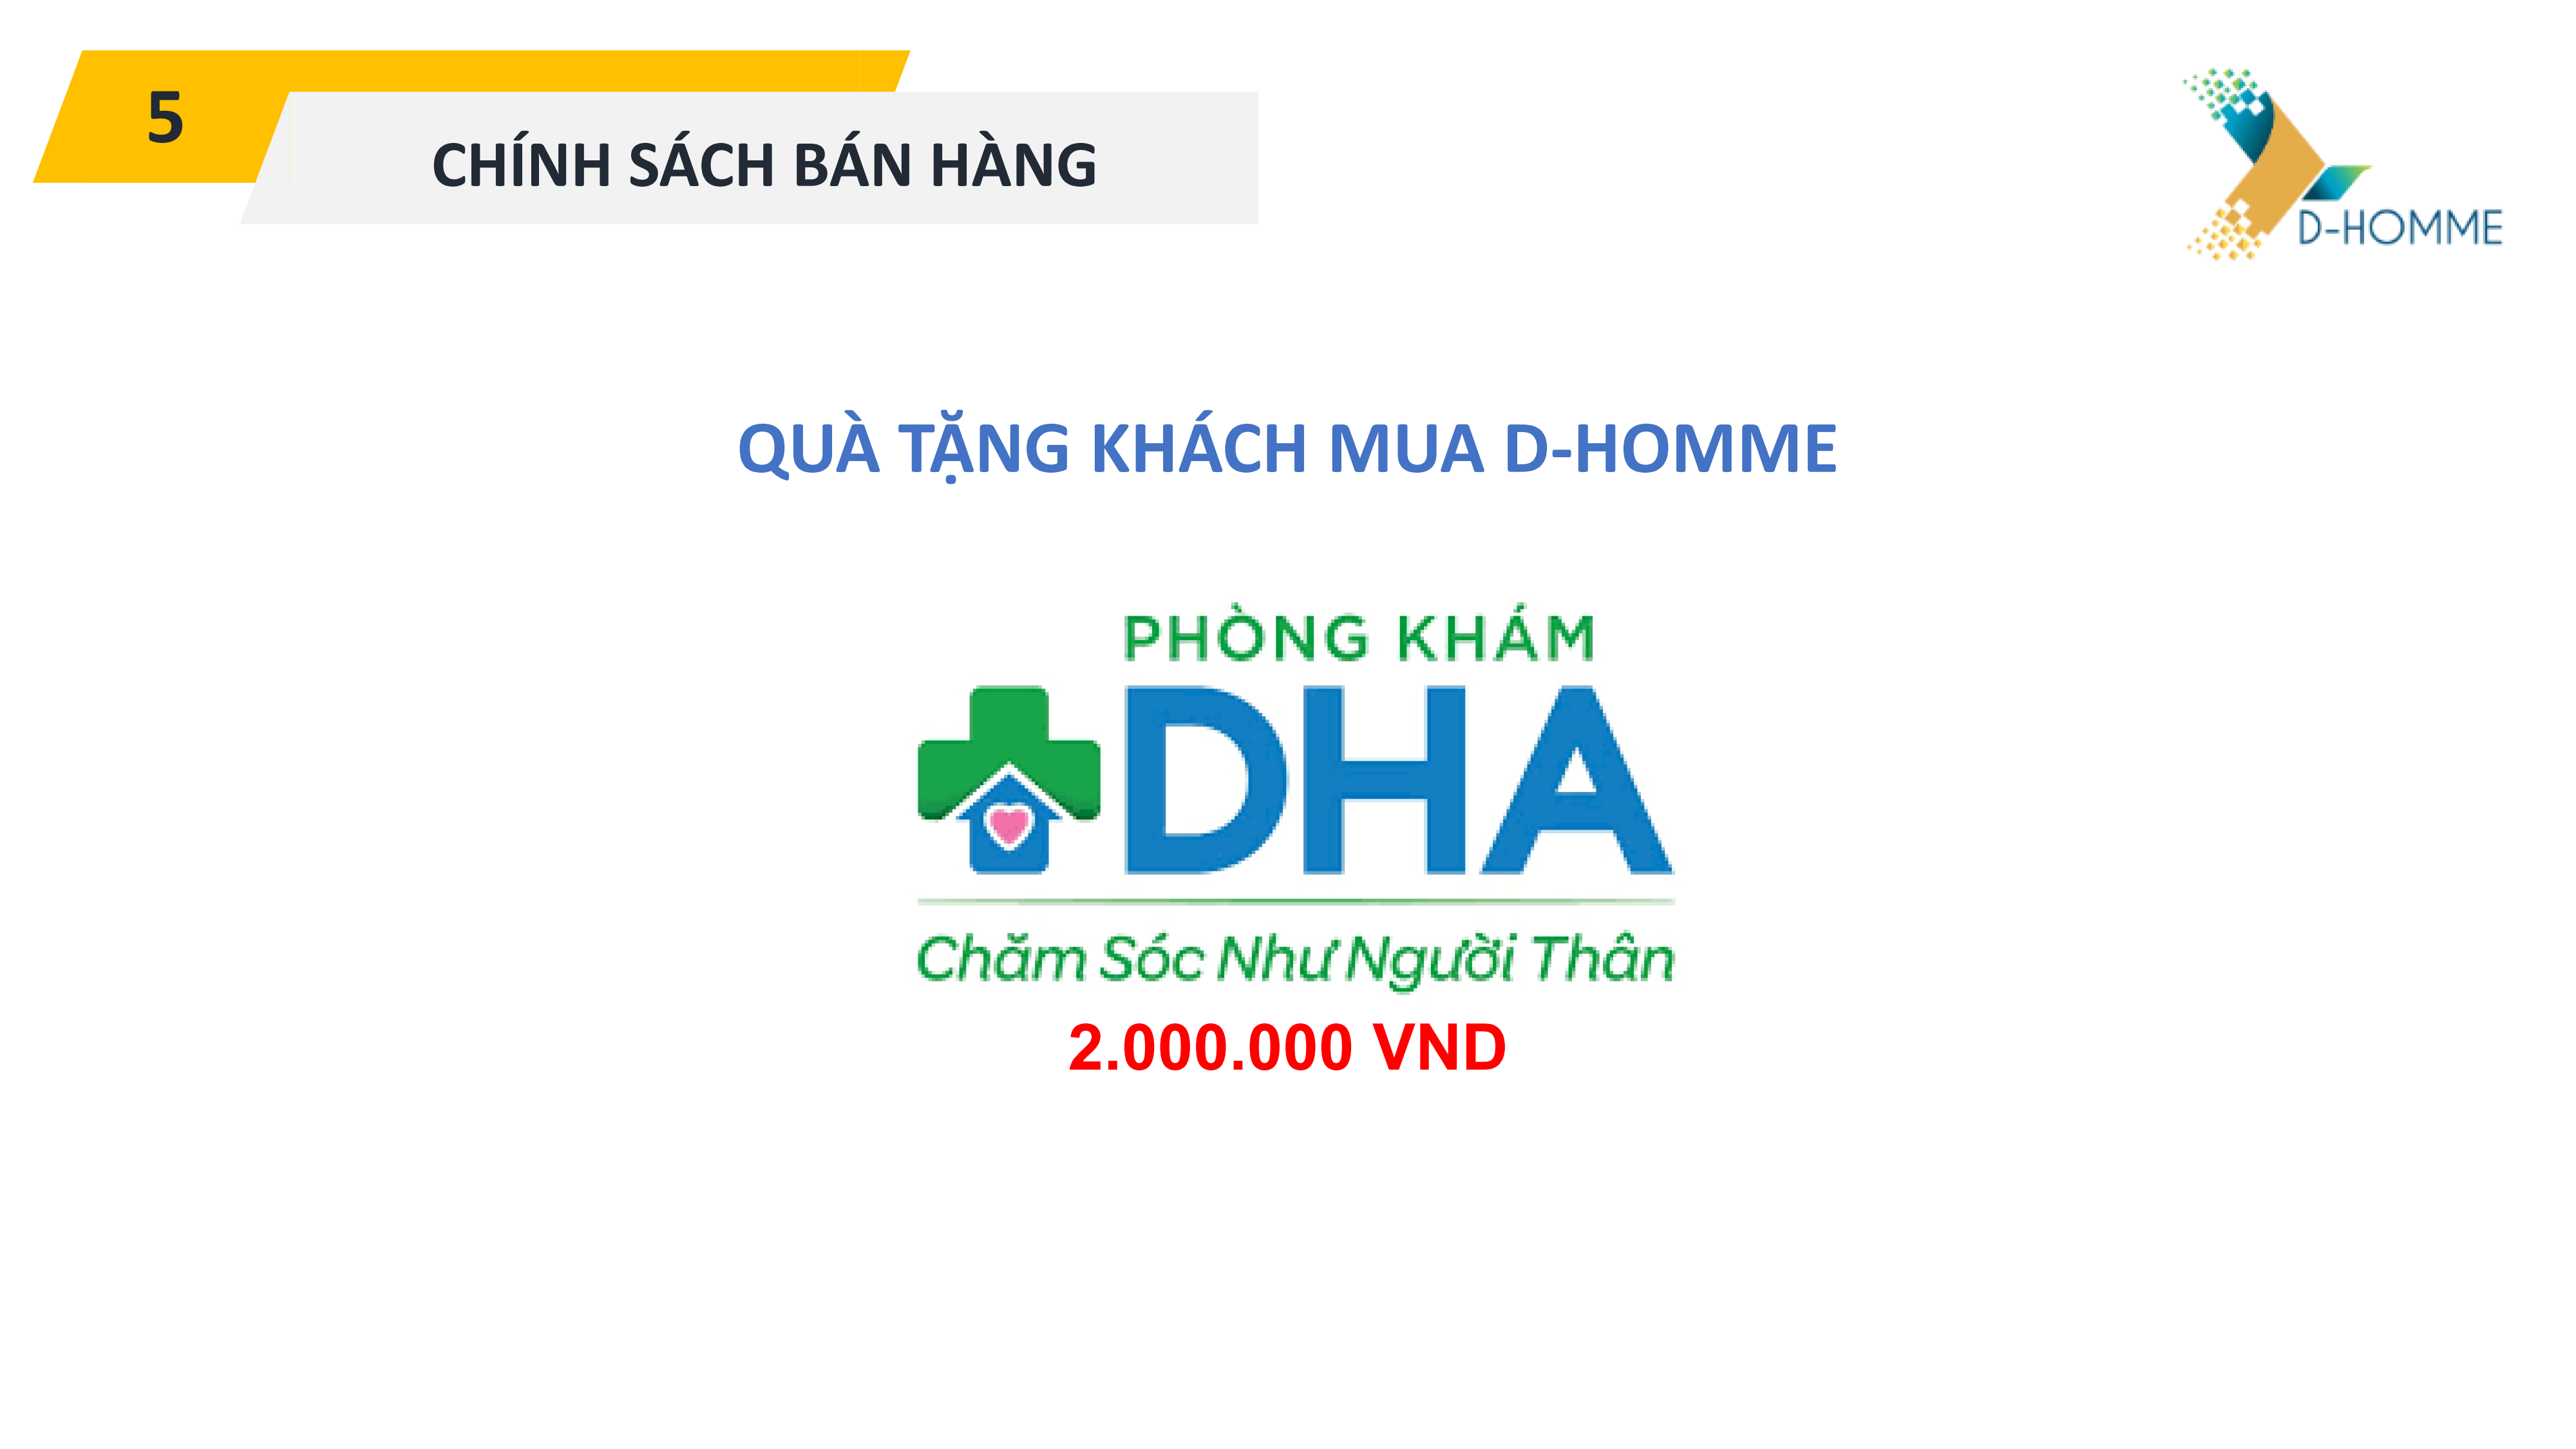 chinh-sach-ban-hang-d-homme-3